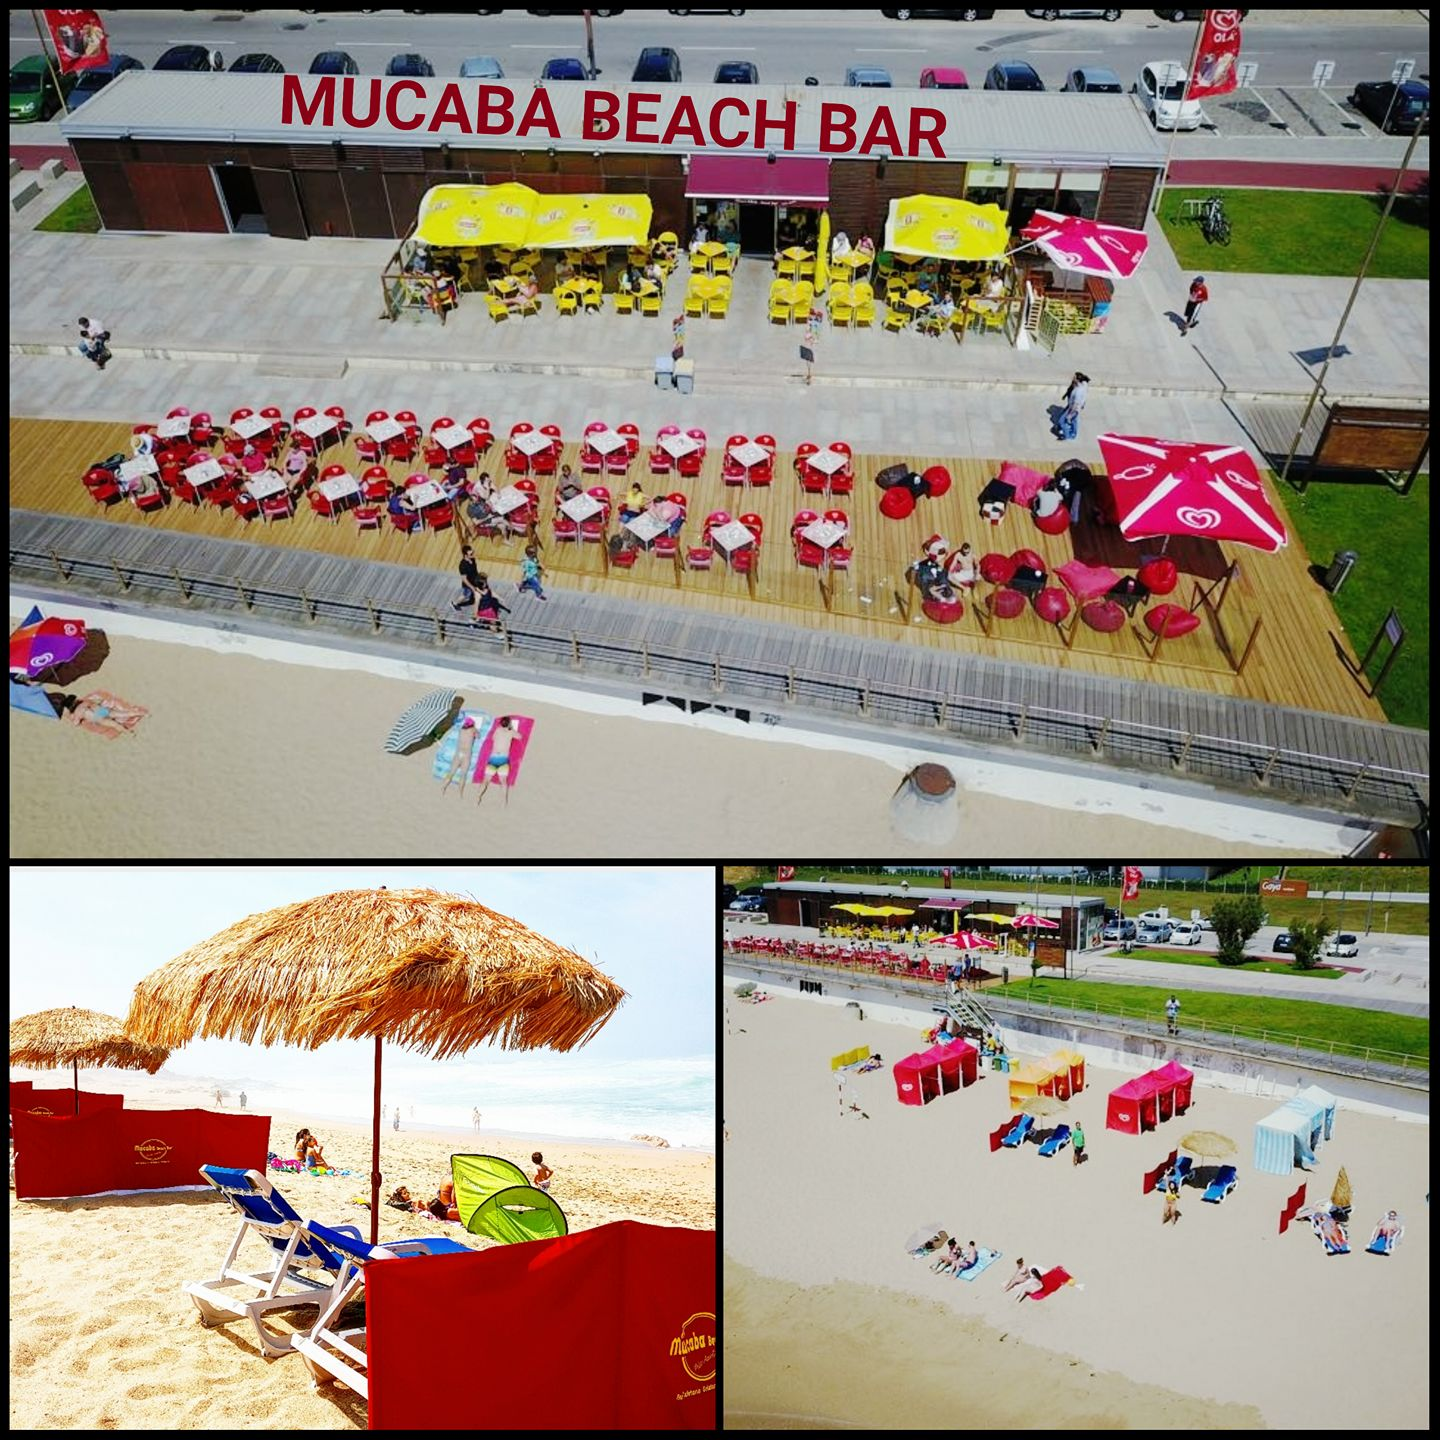 mucaba cafe grill beach bar 7